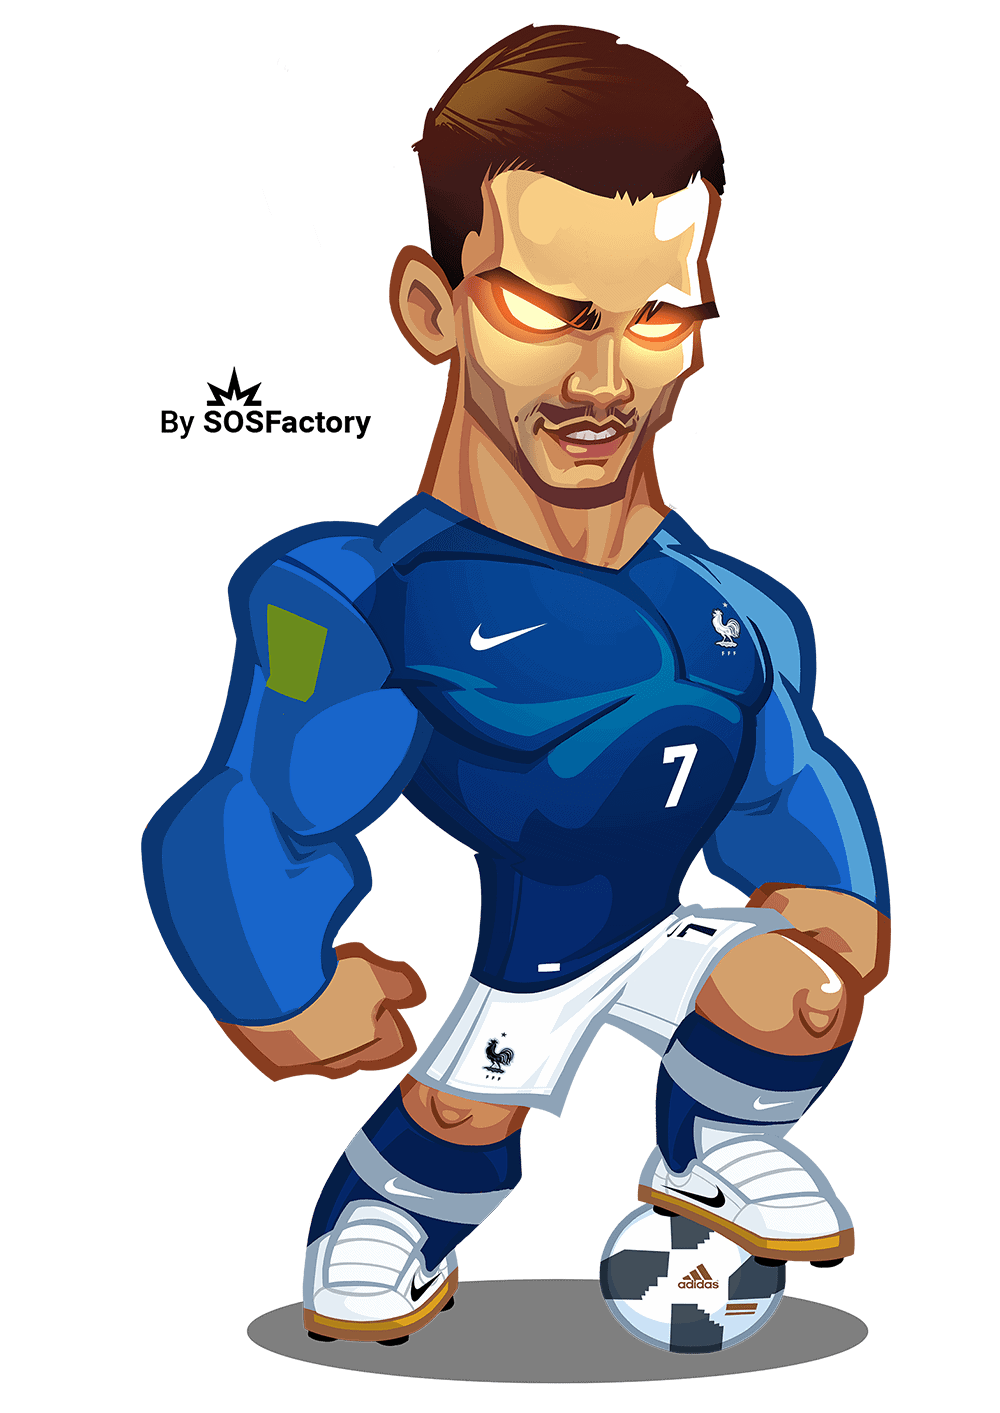 Worldcup Russia 2018 Mascotization Cartoon Mascot